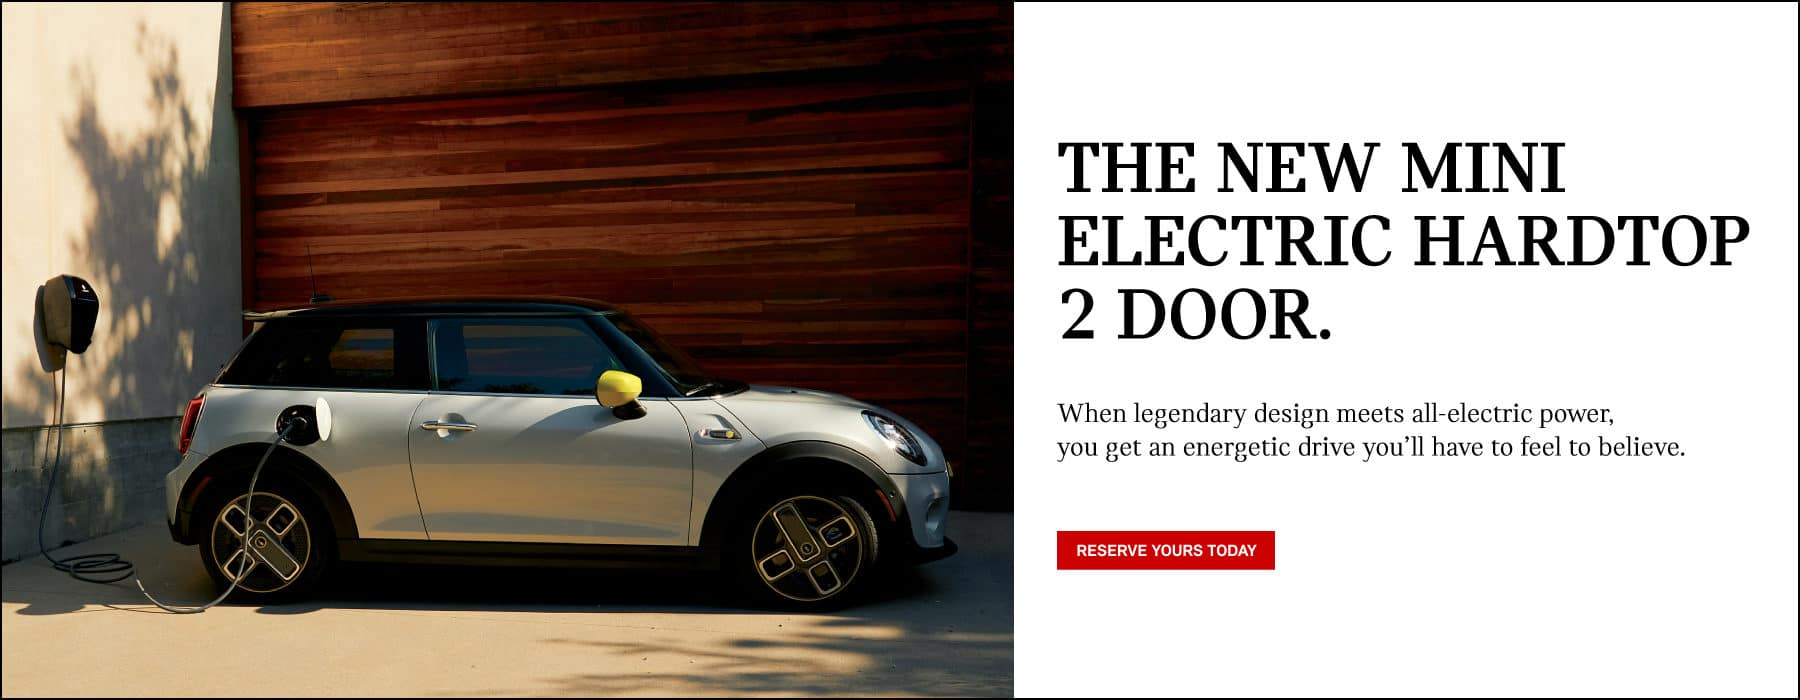 The new MINI Electric Hardtop 2 door.  Reserve Yours Today